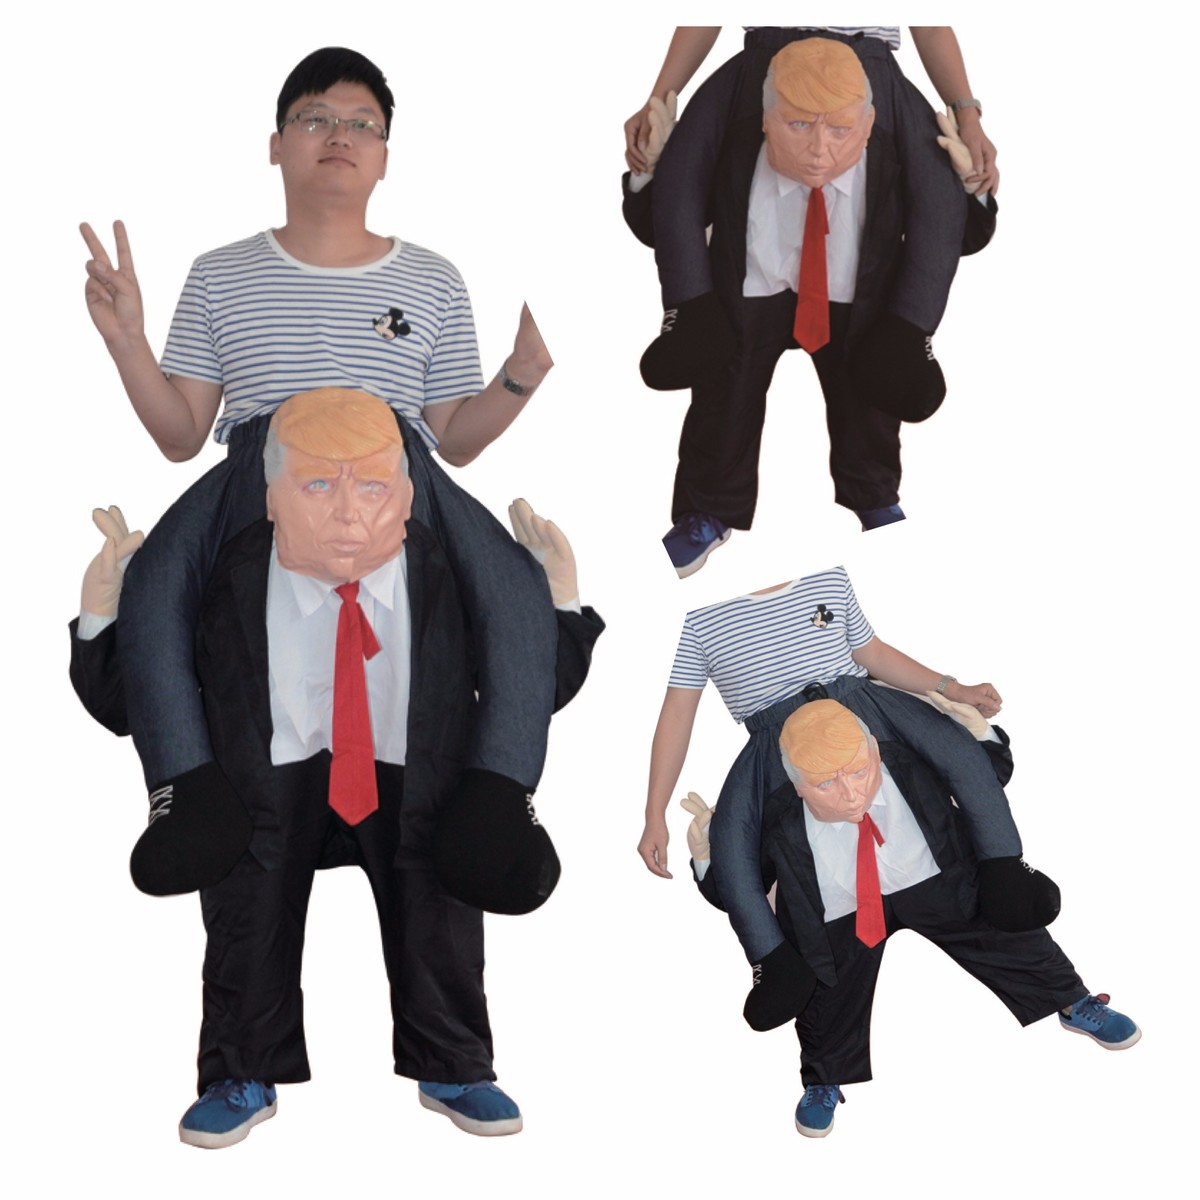 Novelty toy US Riding on DT Donald Trump Dress up Halloween Party Cosplay clothes Saddle Horse Outdoor toy Mascot Soft pants trump donald john trump think like a billionaire